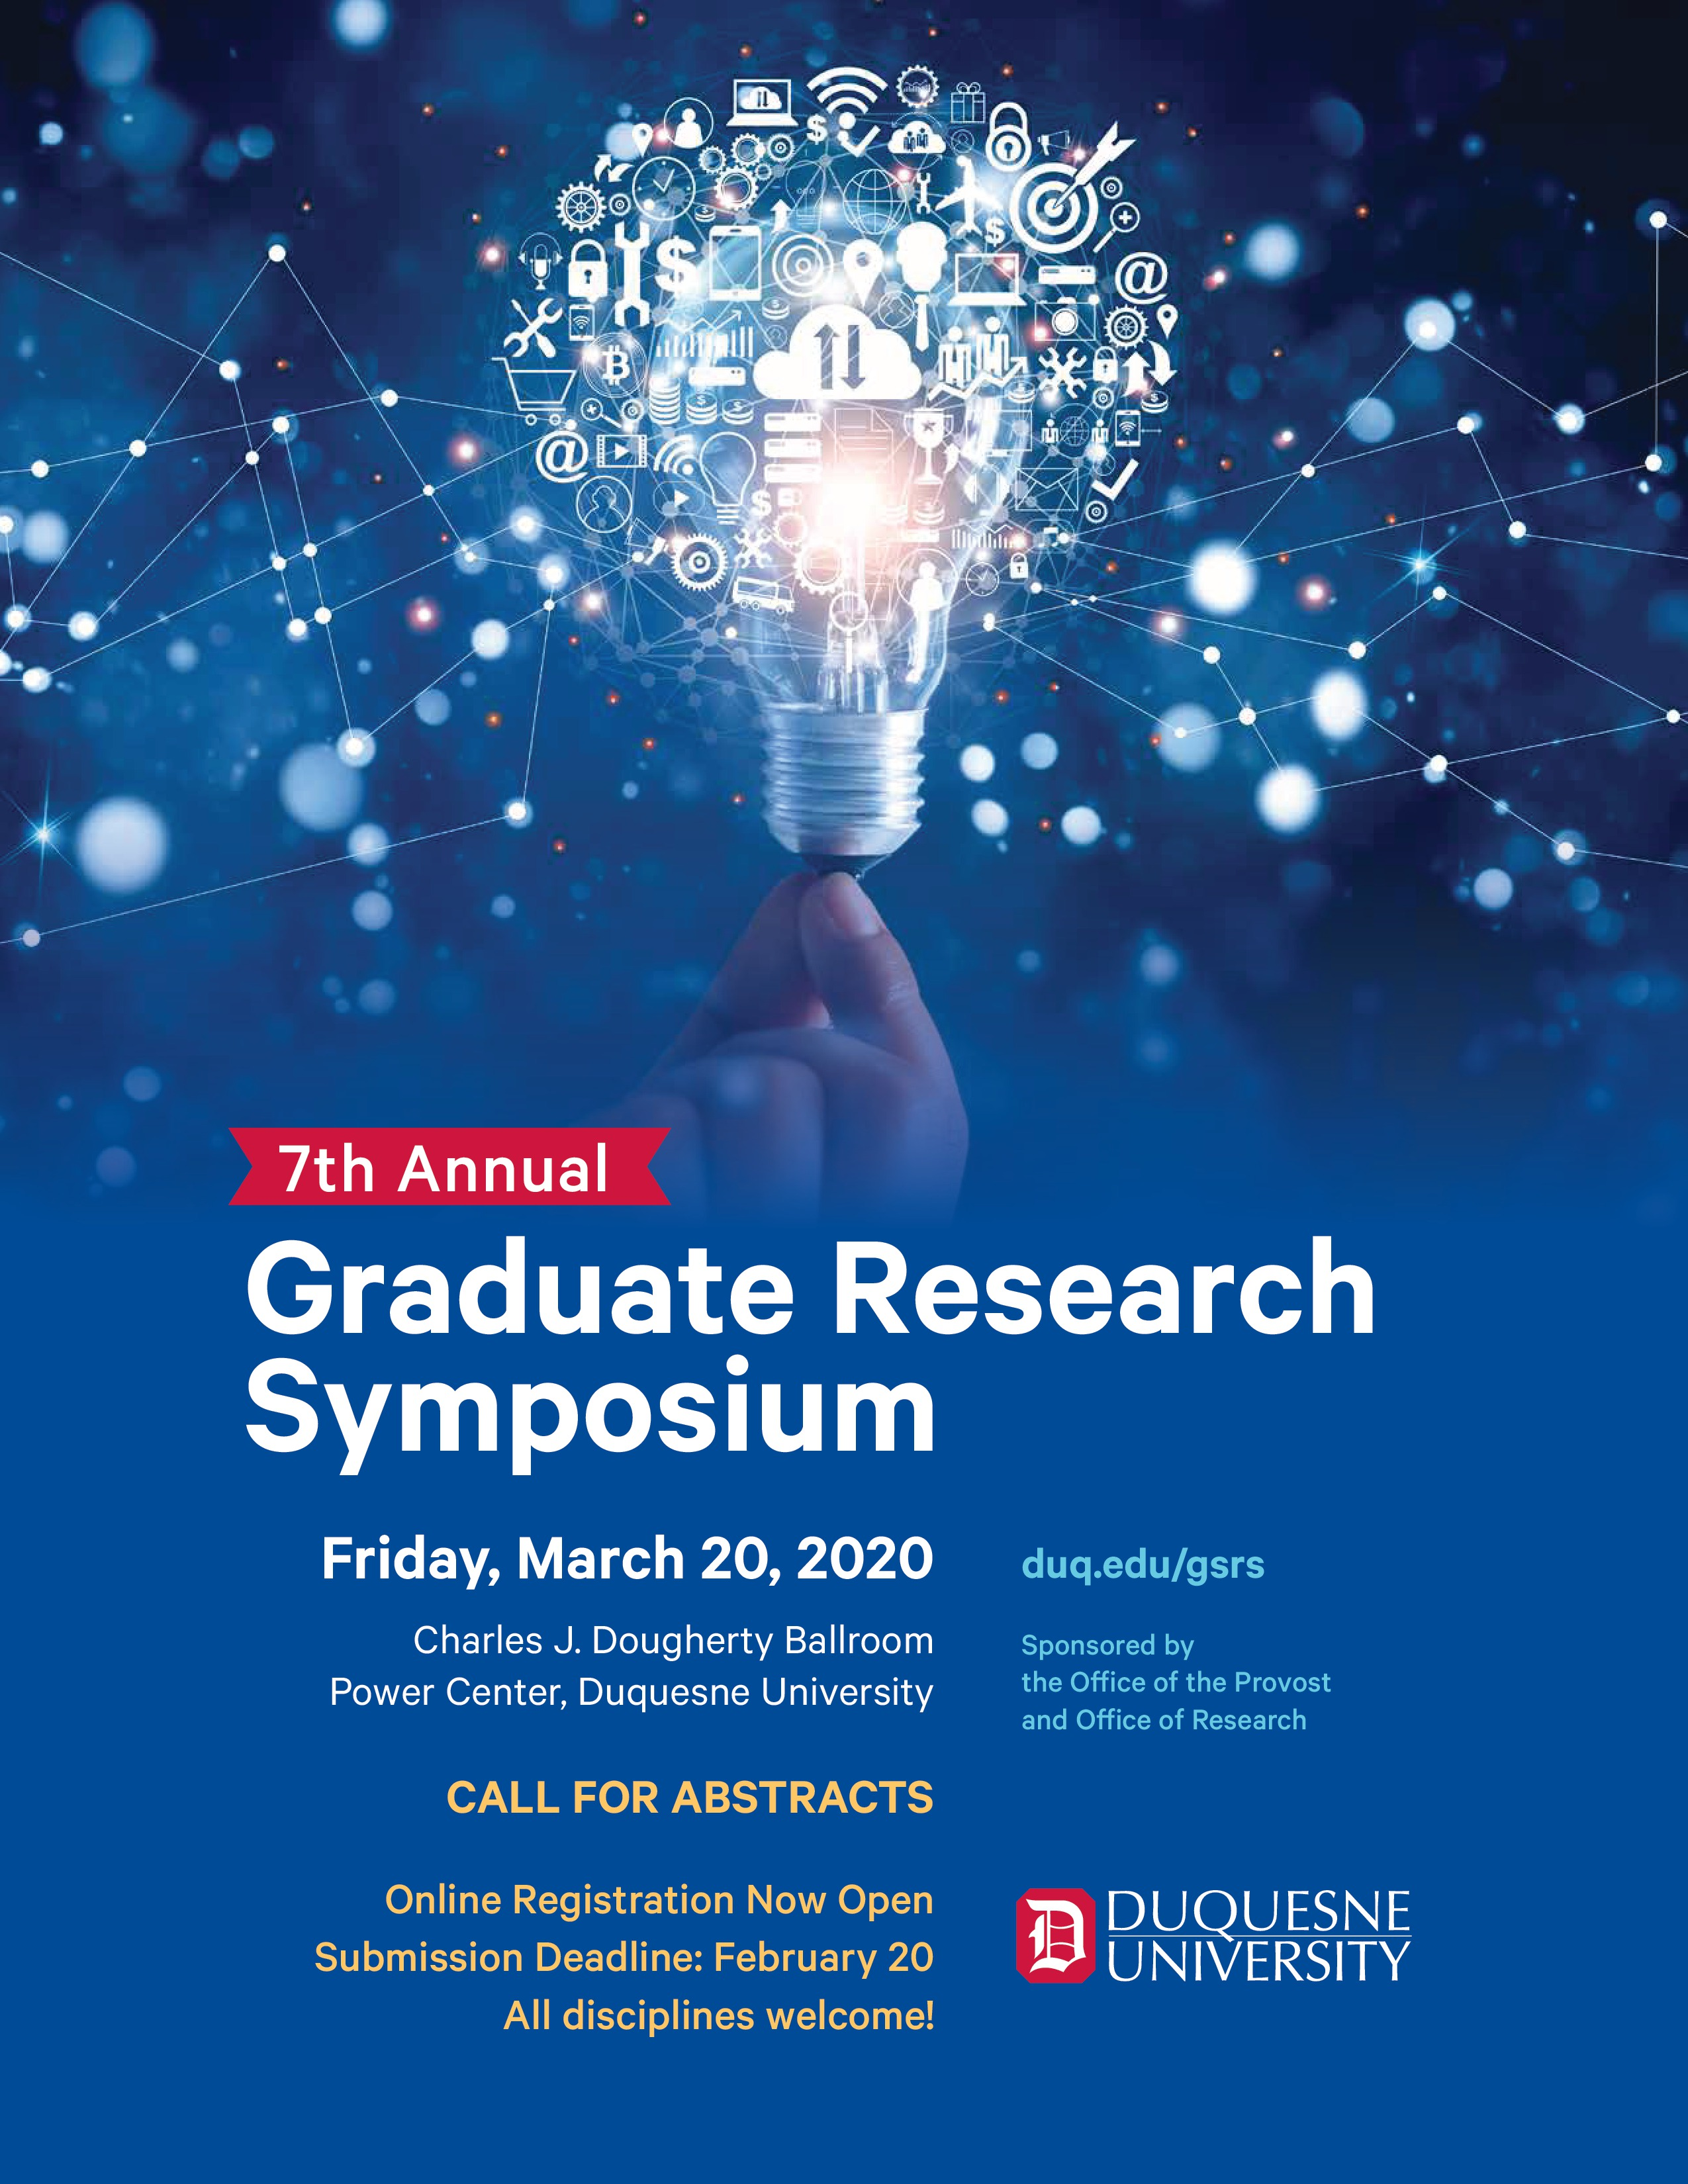 The 7th Annual Graduate Student Research Symposium